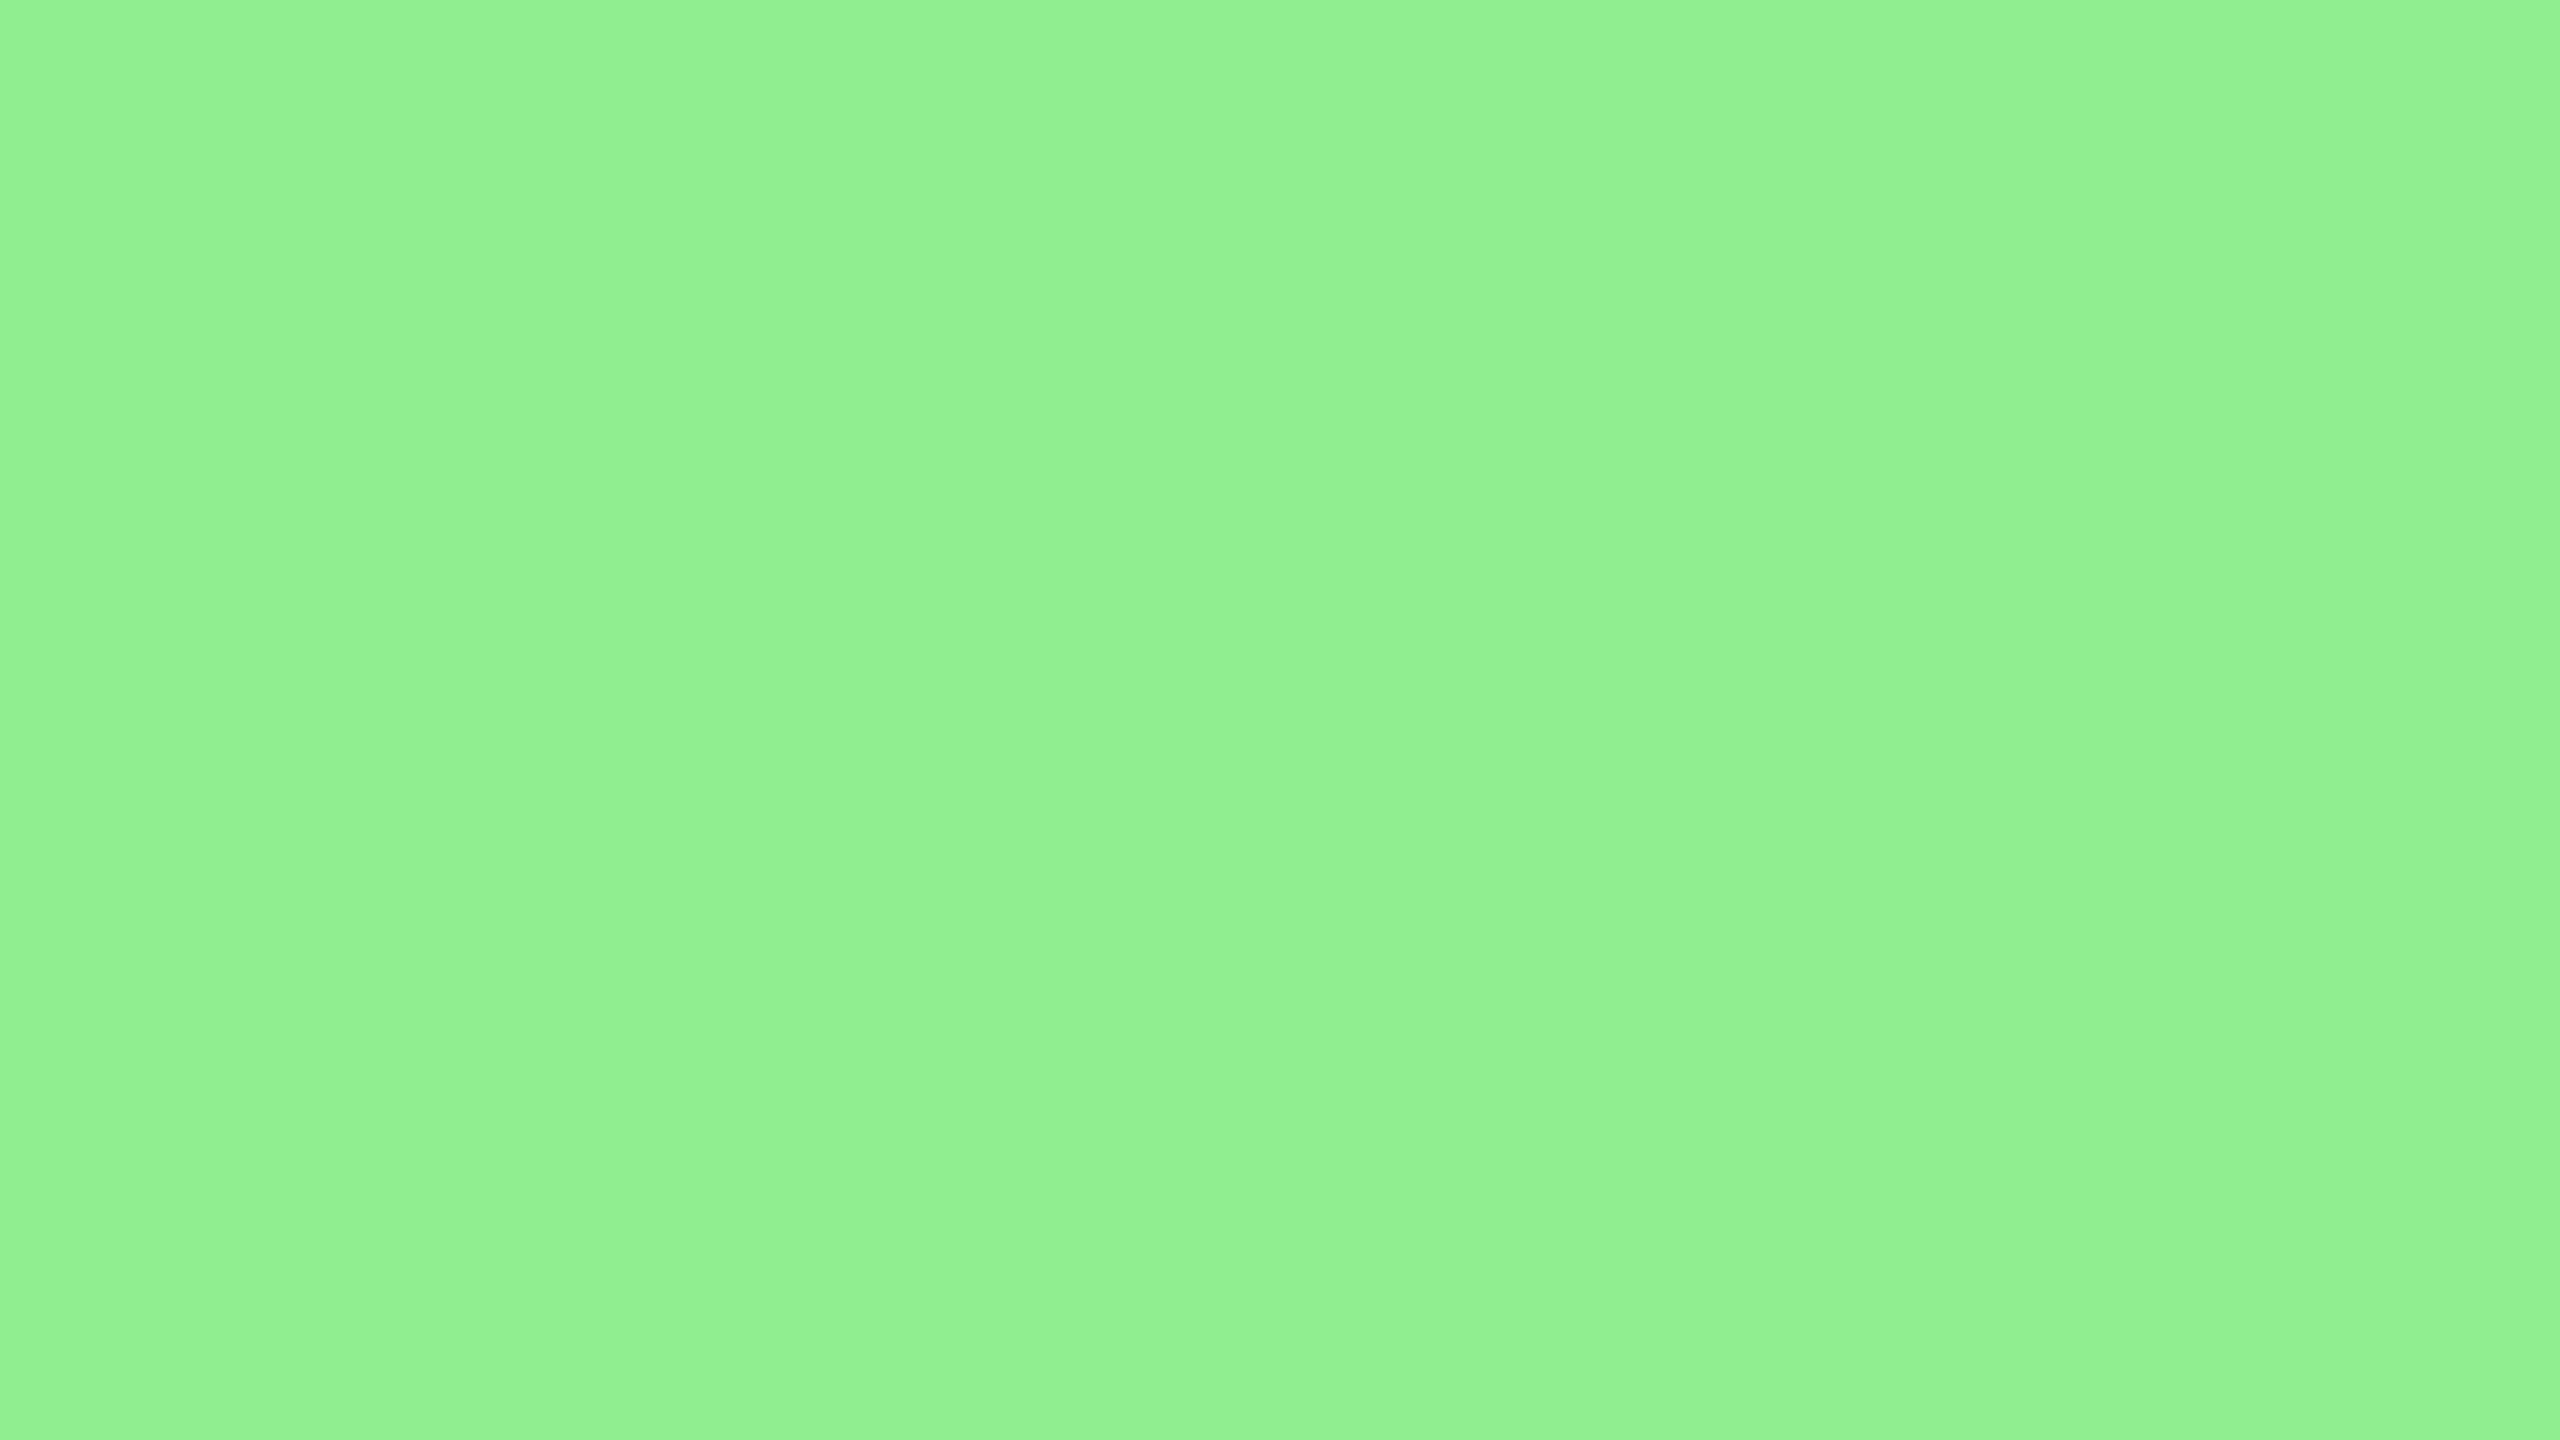 Light Green Background Related Keywords amp Suggestions 2560x1440